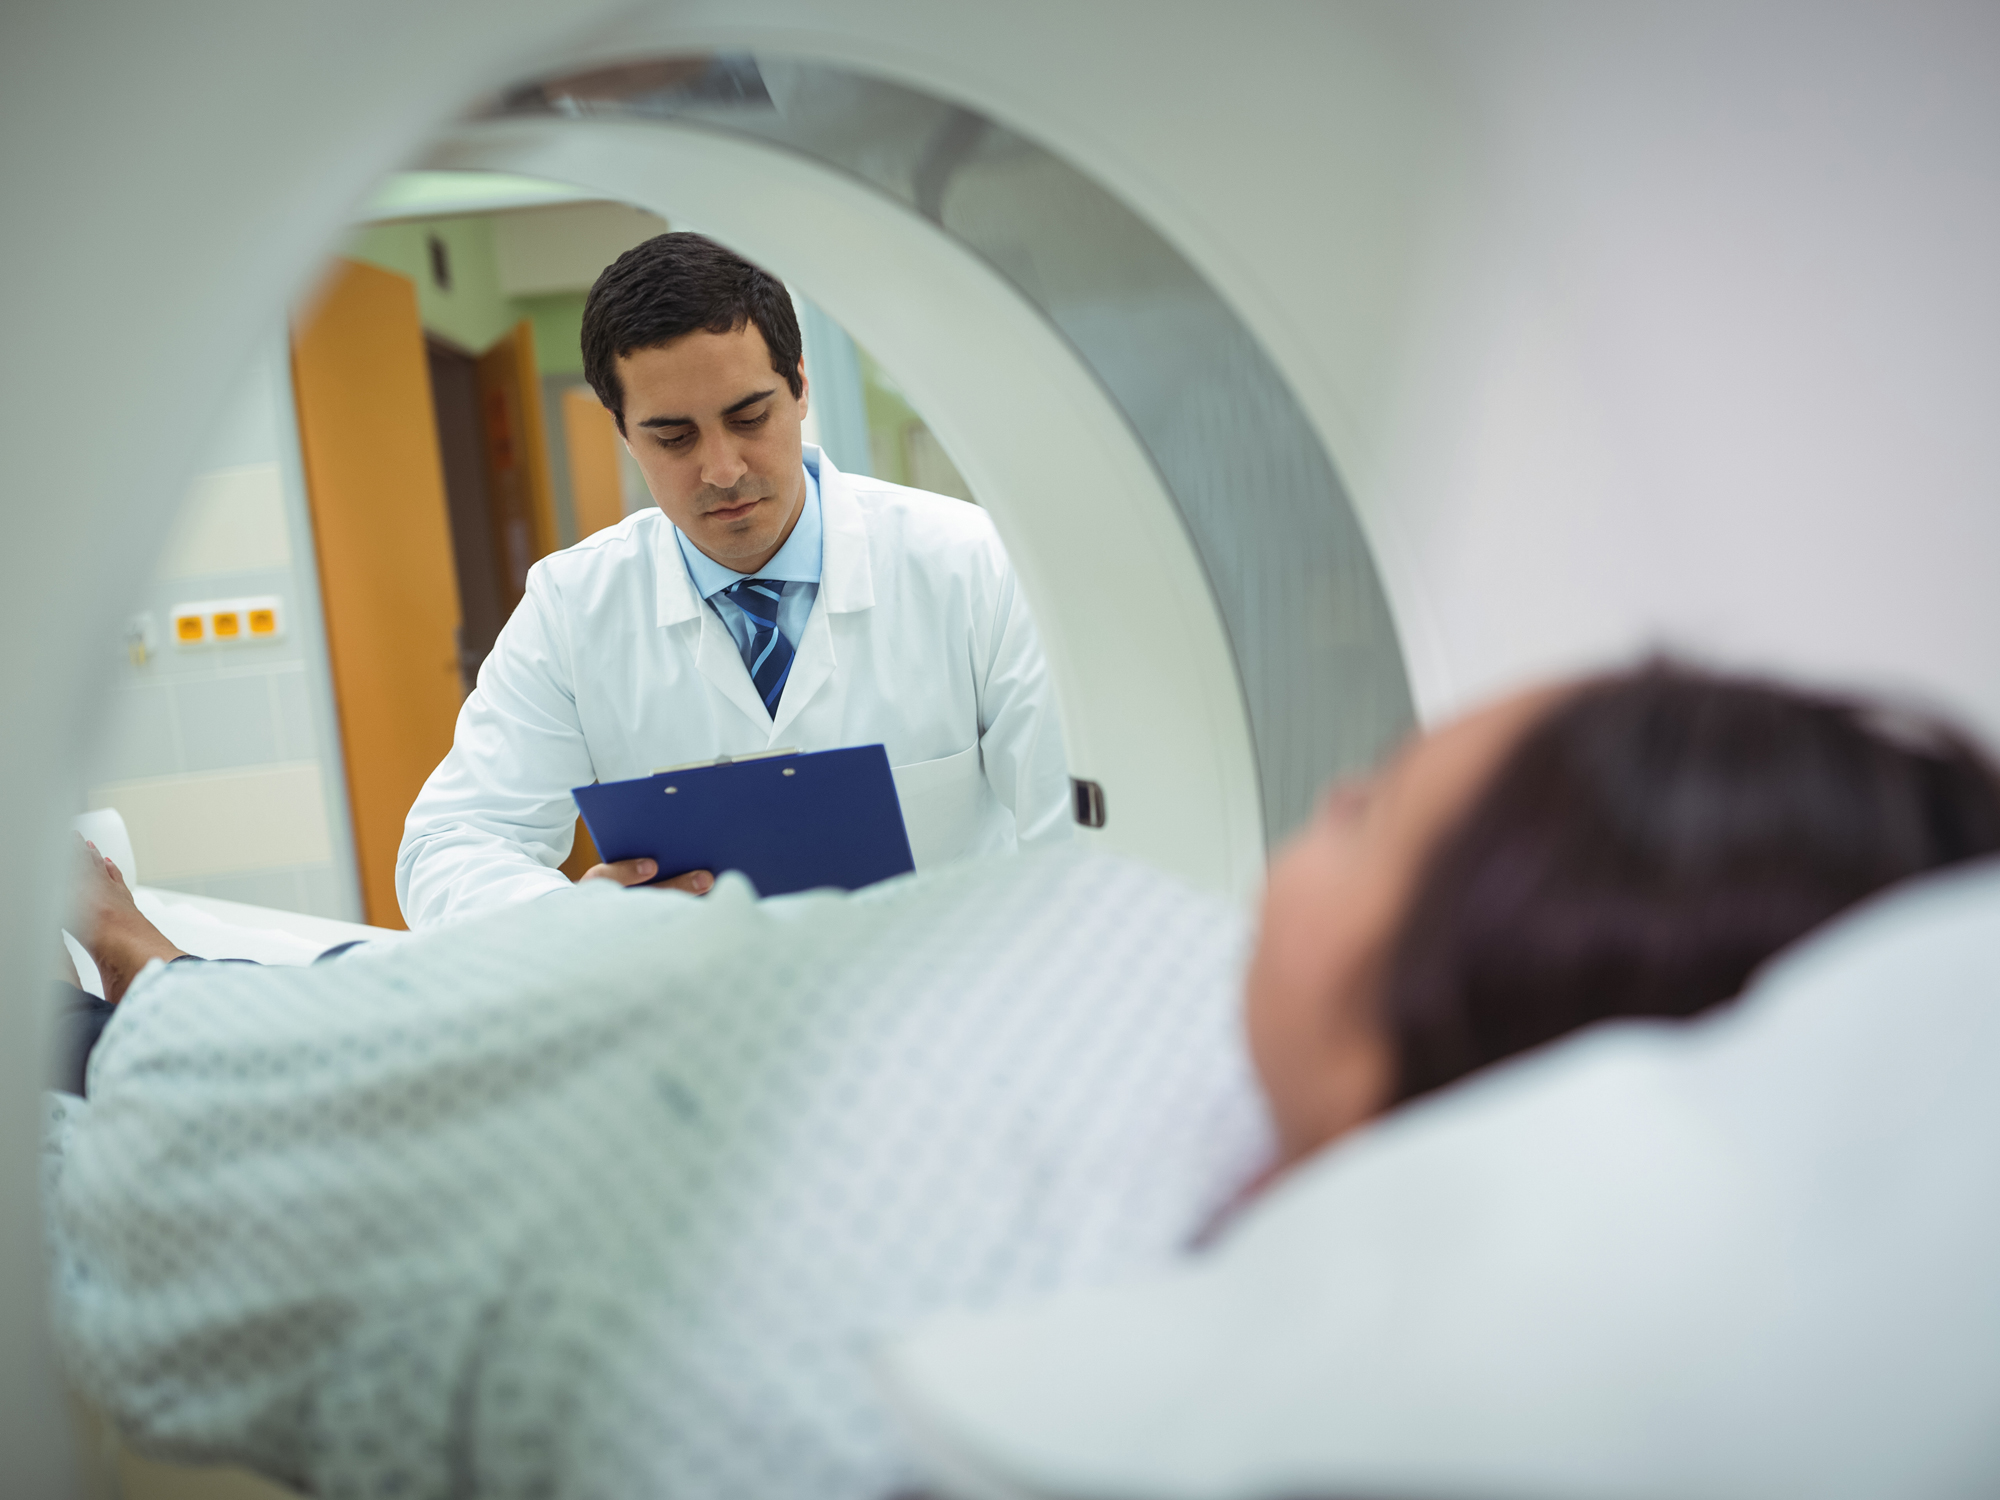 MRI: The 'routine' procedure that could ruin your life